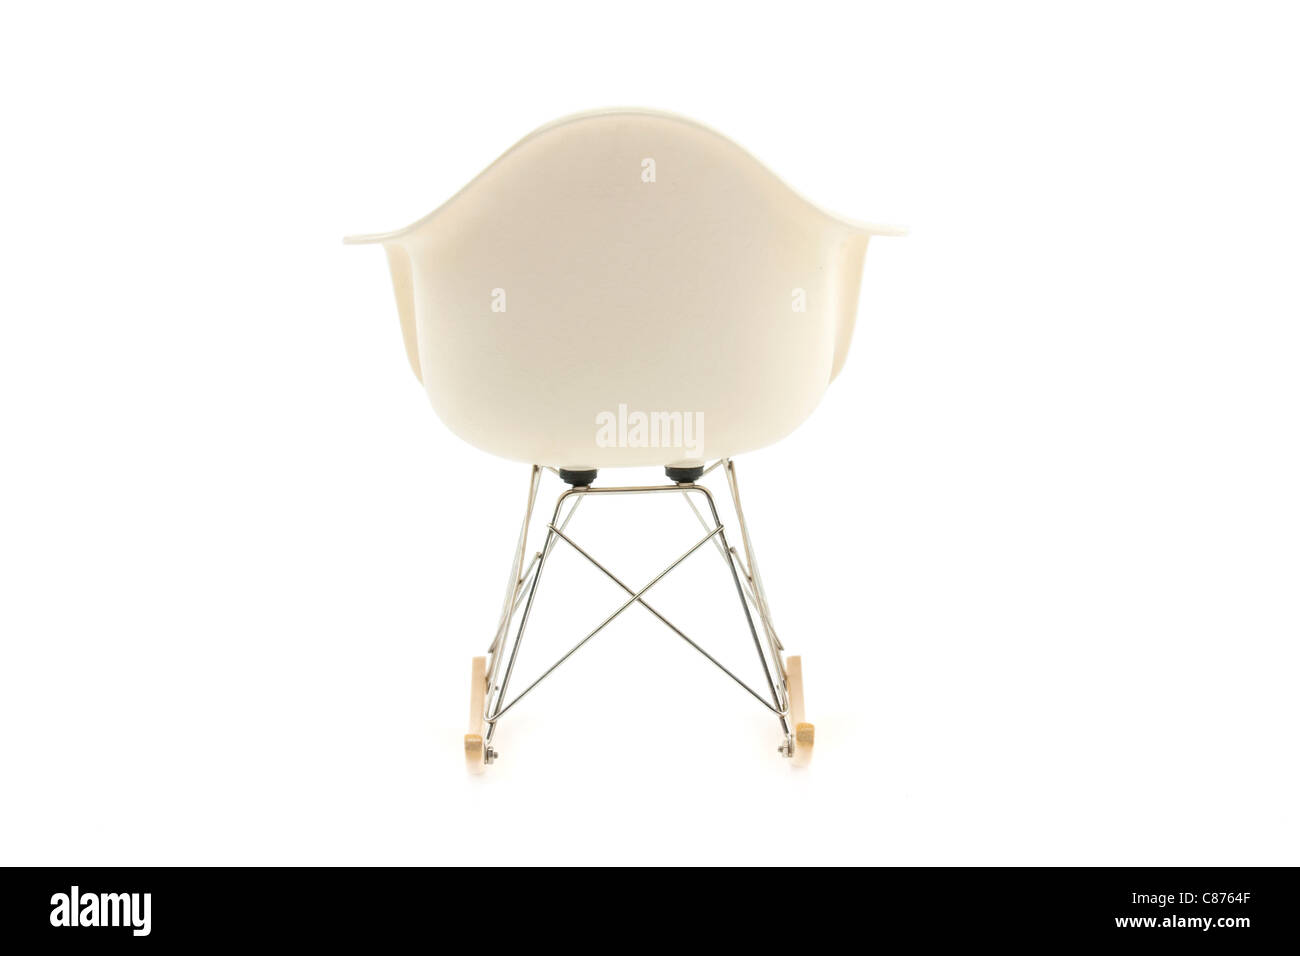 Rocking Chair Kogan Eames Furniture Stock Photos And Eames Furniture Stock